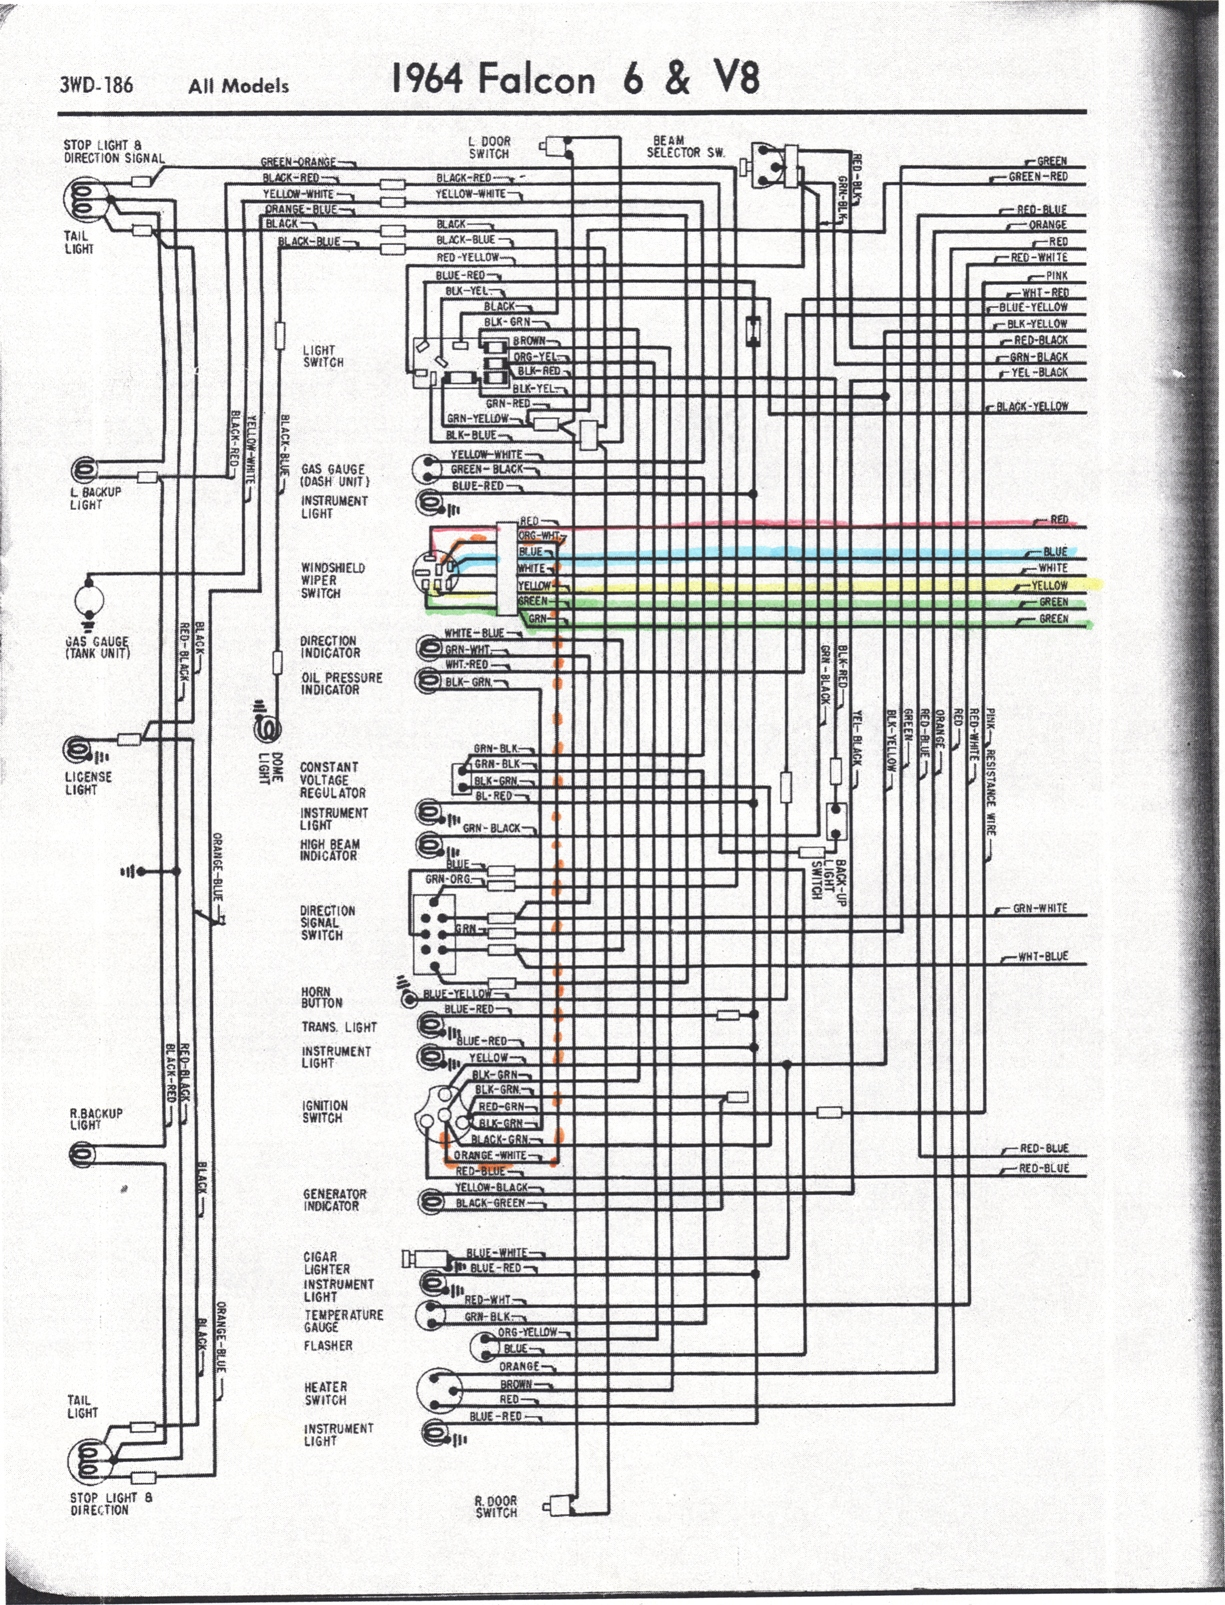 64_Falcon 1 falcon diagrams 1964 falcon wiring diagram at nearapp.co